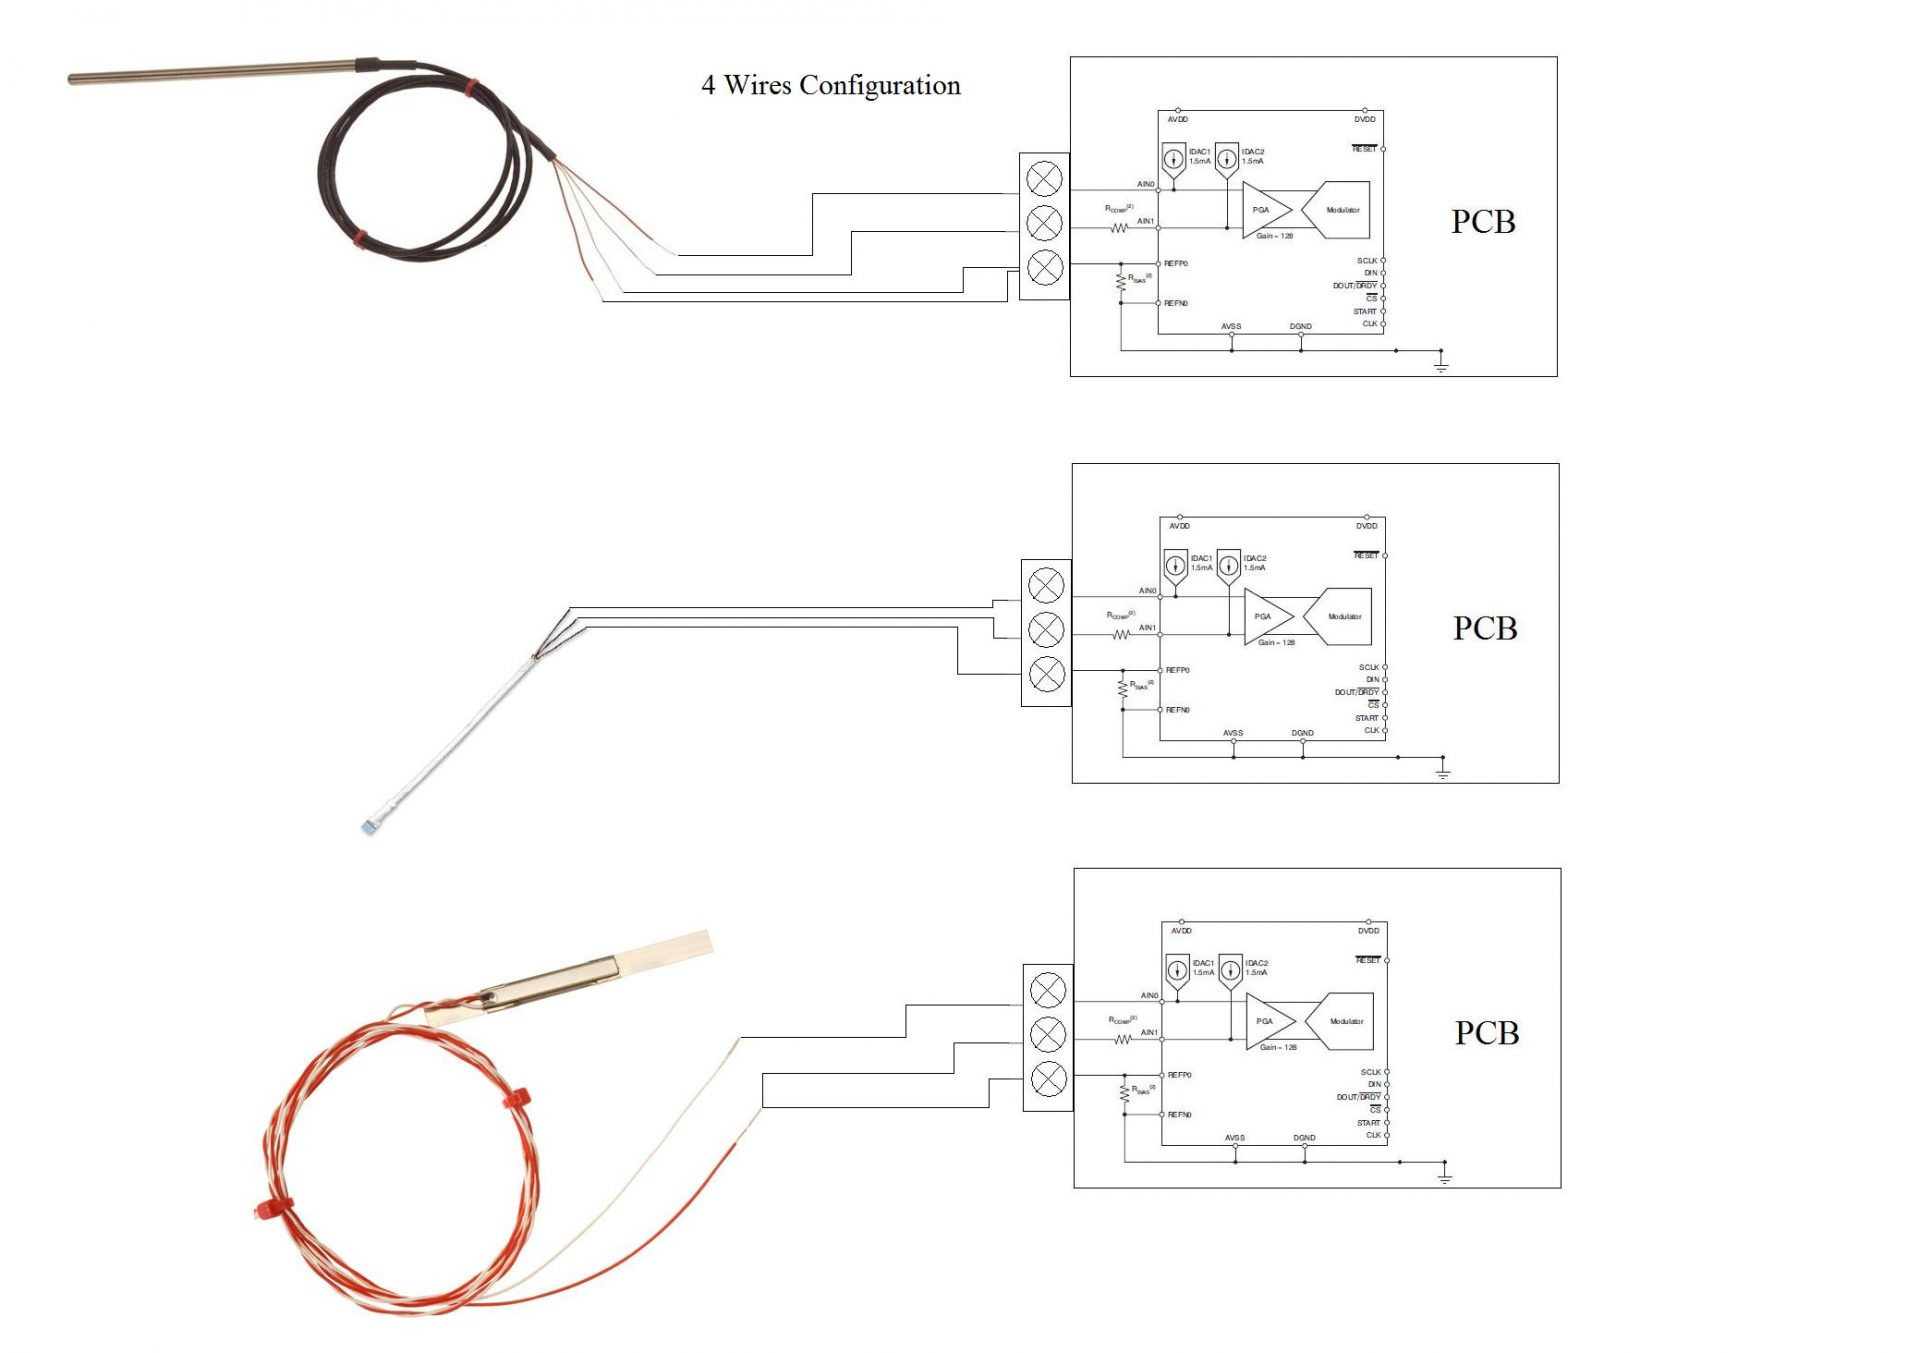 4 wire rtd wiring diagram Download-Thermocouple Wiring Diagram Inspirational Thermocouple Wiring Diagram Unique Best 4 Wire Thermocouple Gallery 2-j